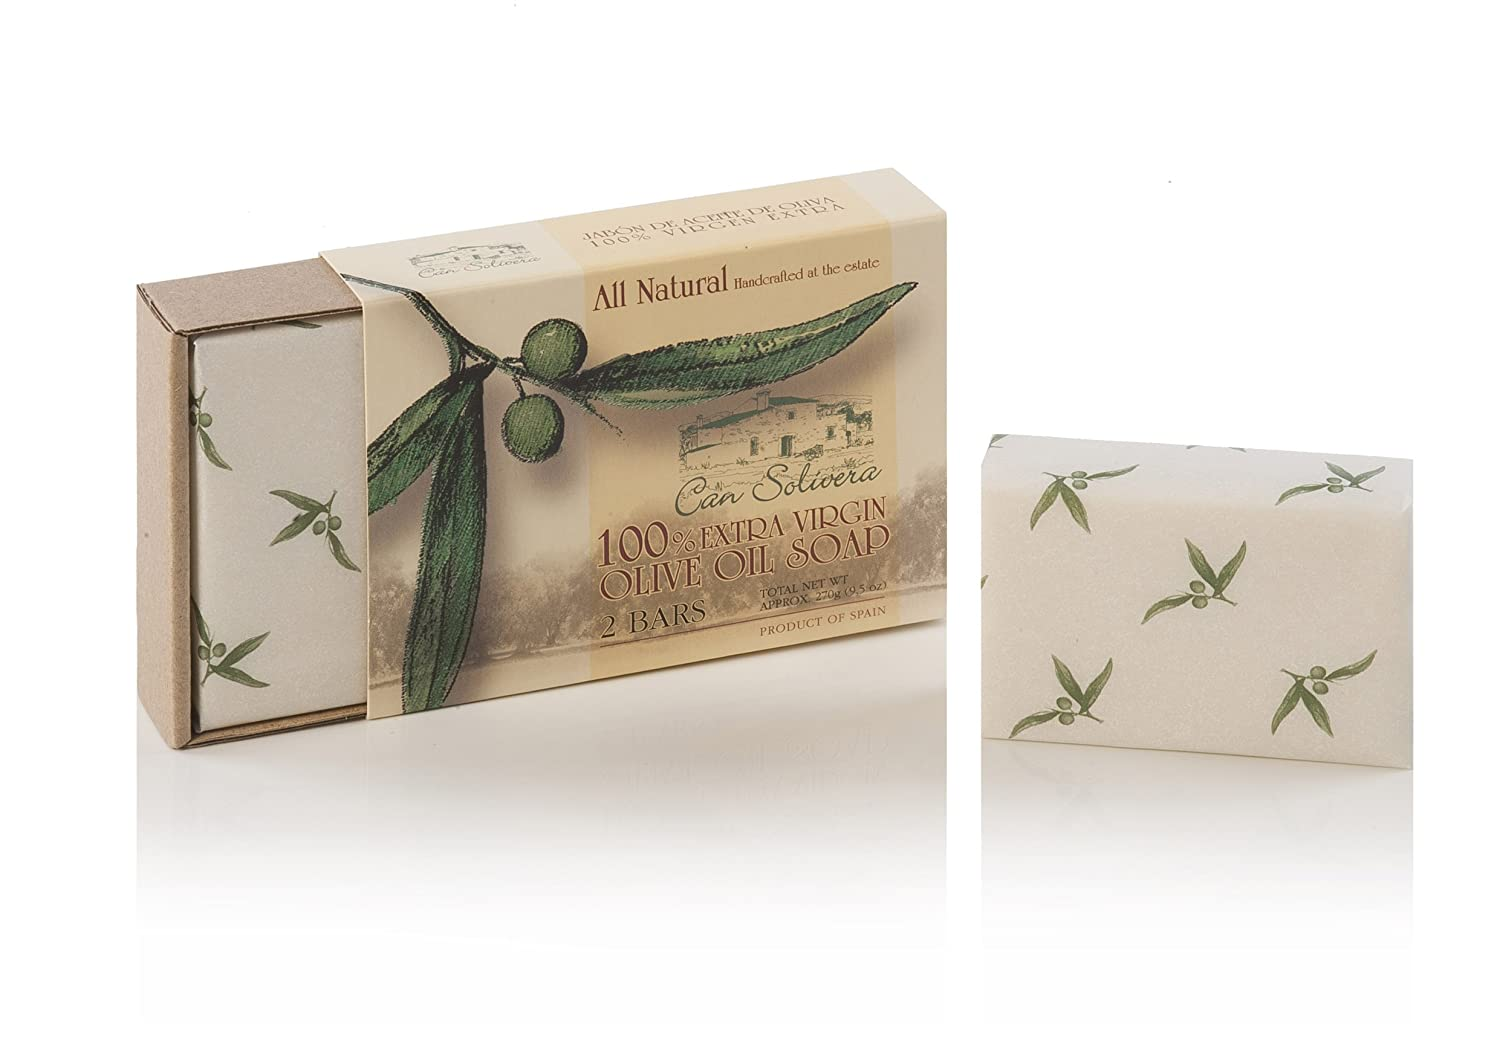 Can Solivera – 100 Pure Extra Virgin Olive Oil Solid Soap – Family Made by Medieval Receipe, 2 Bars of approx. 135g Each.